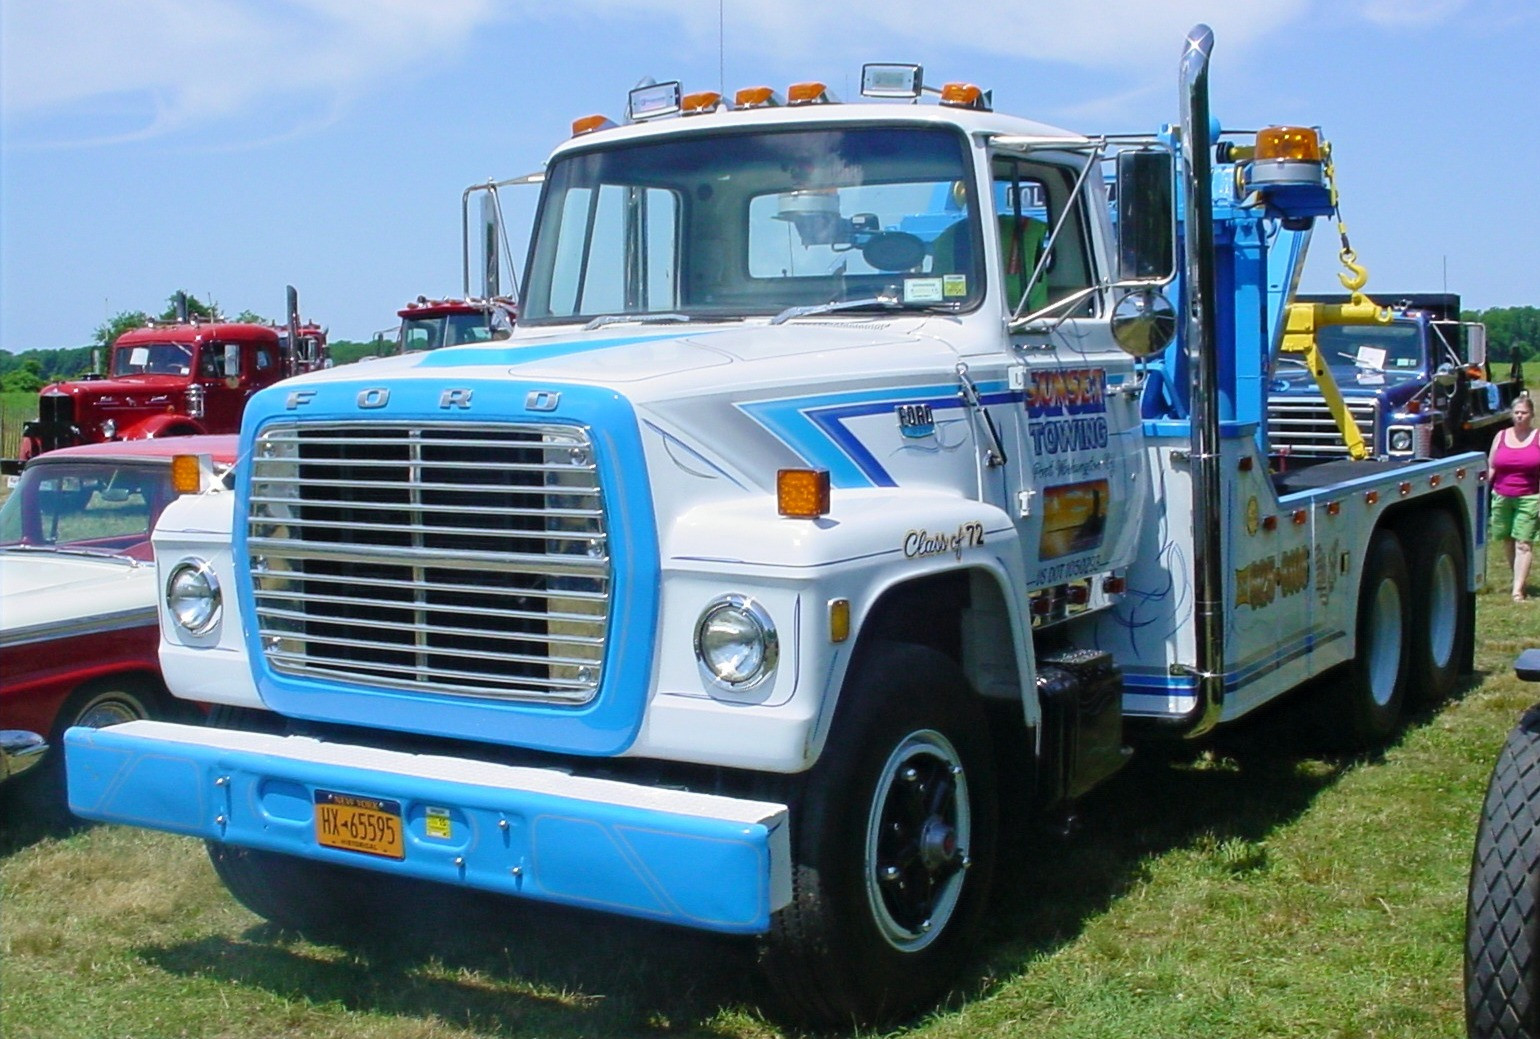 Featured show truck, Barry Stanchio's 1972 Ford LT-9000 wrecker